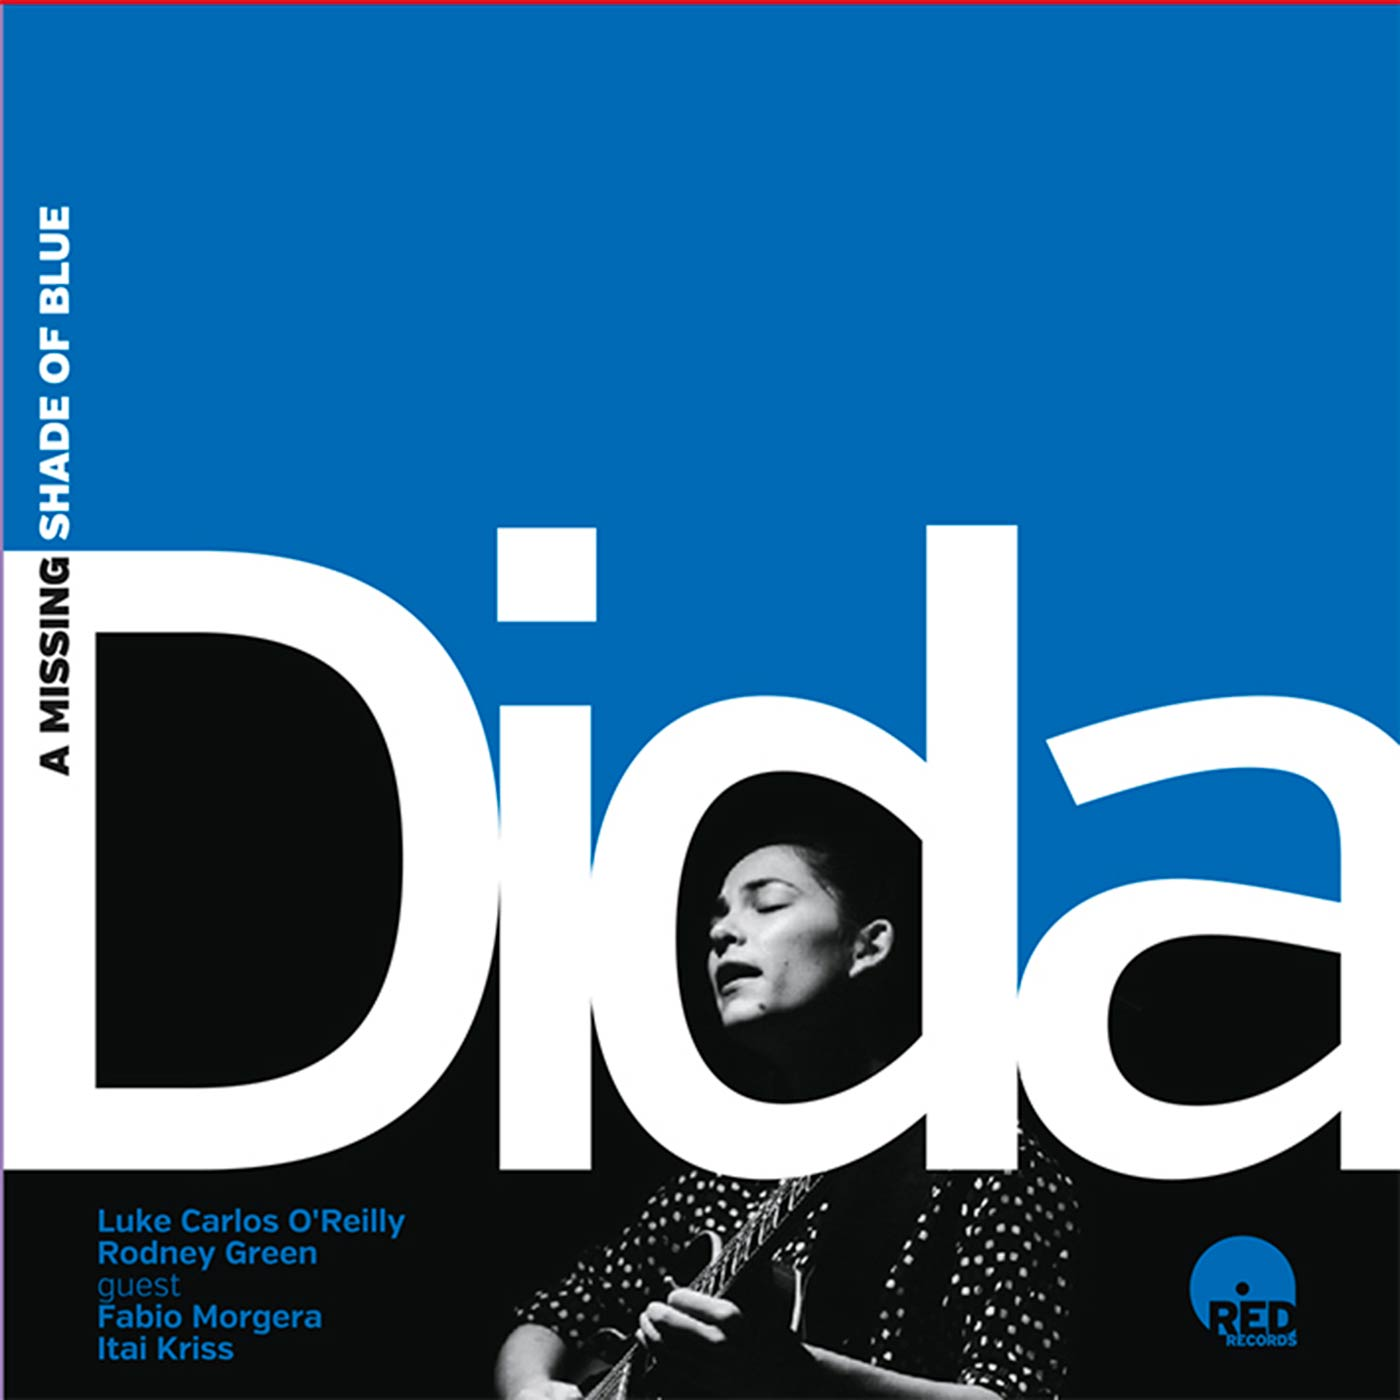 A Missing Shade Of Blue - Dida Pelled